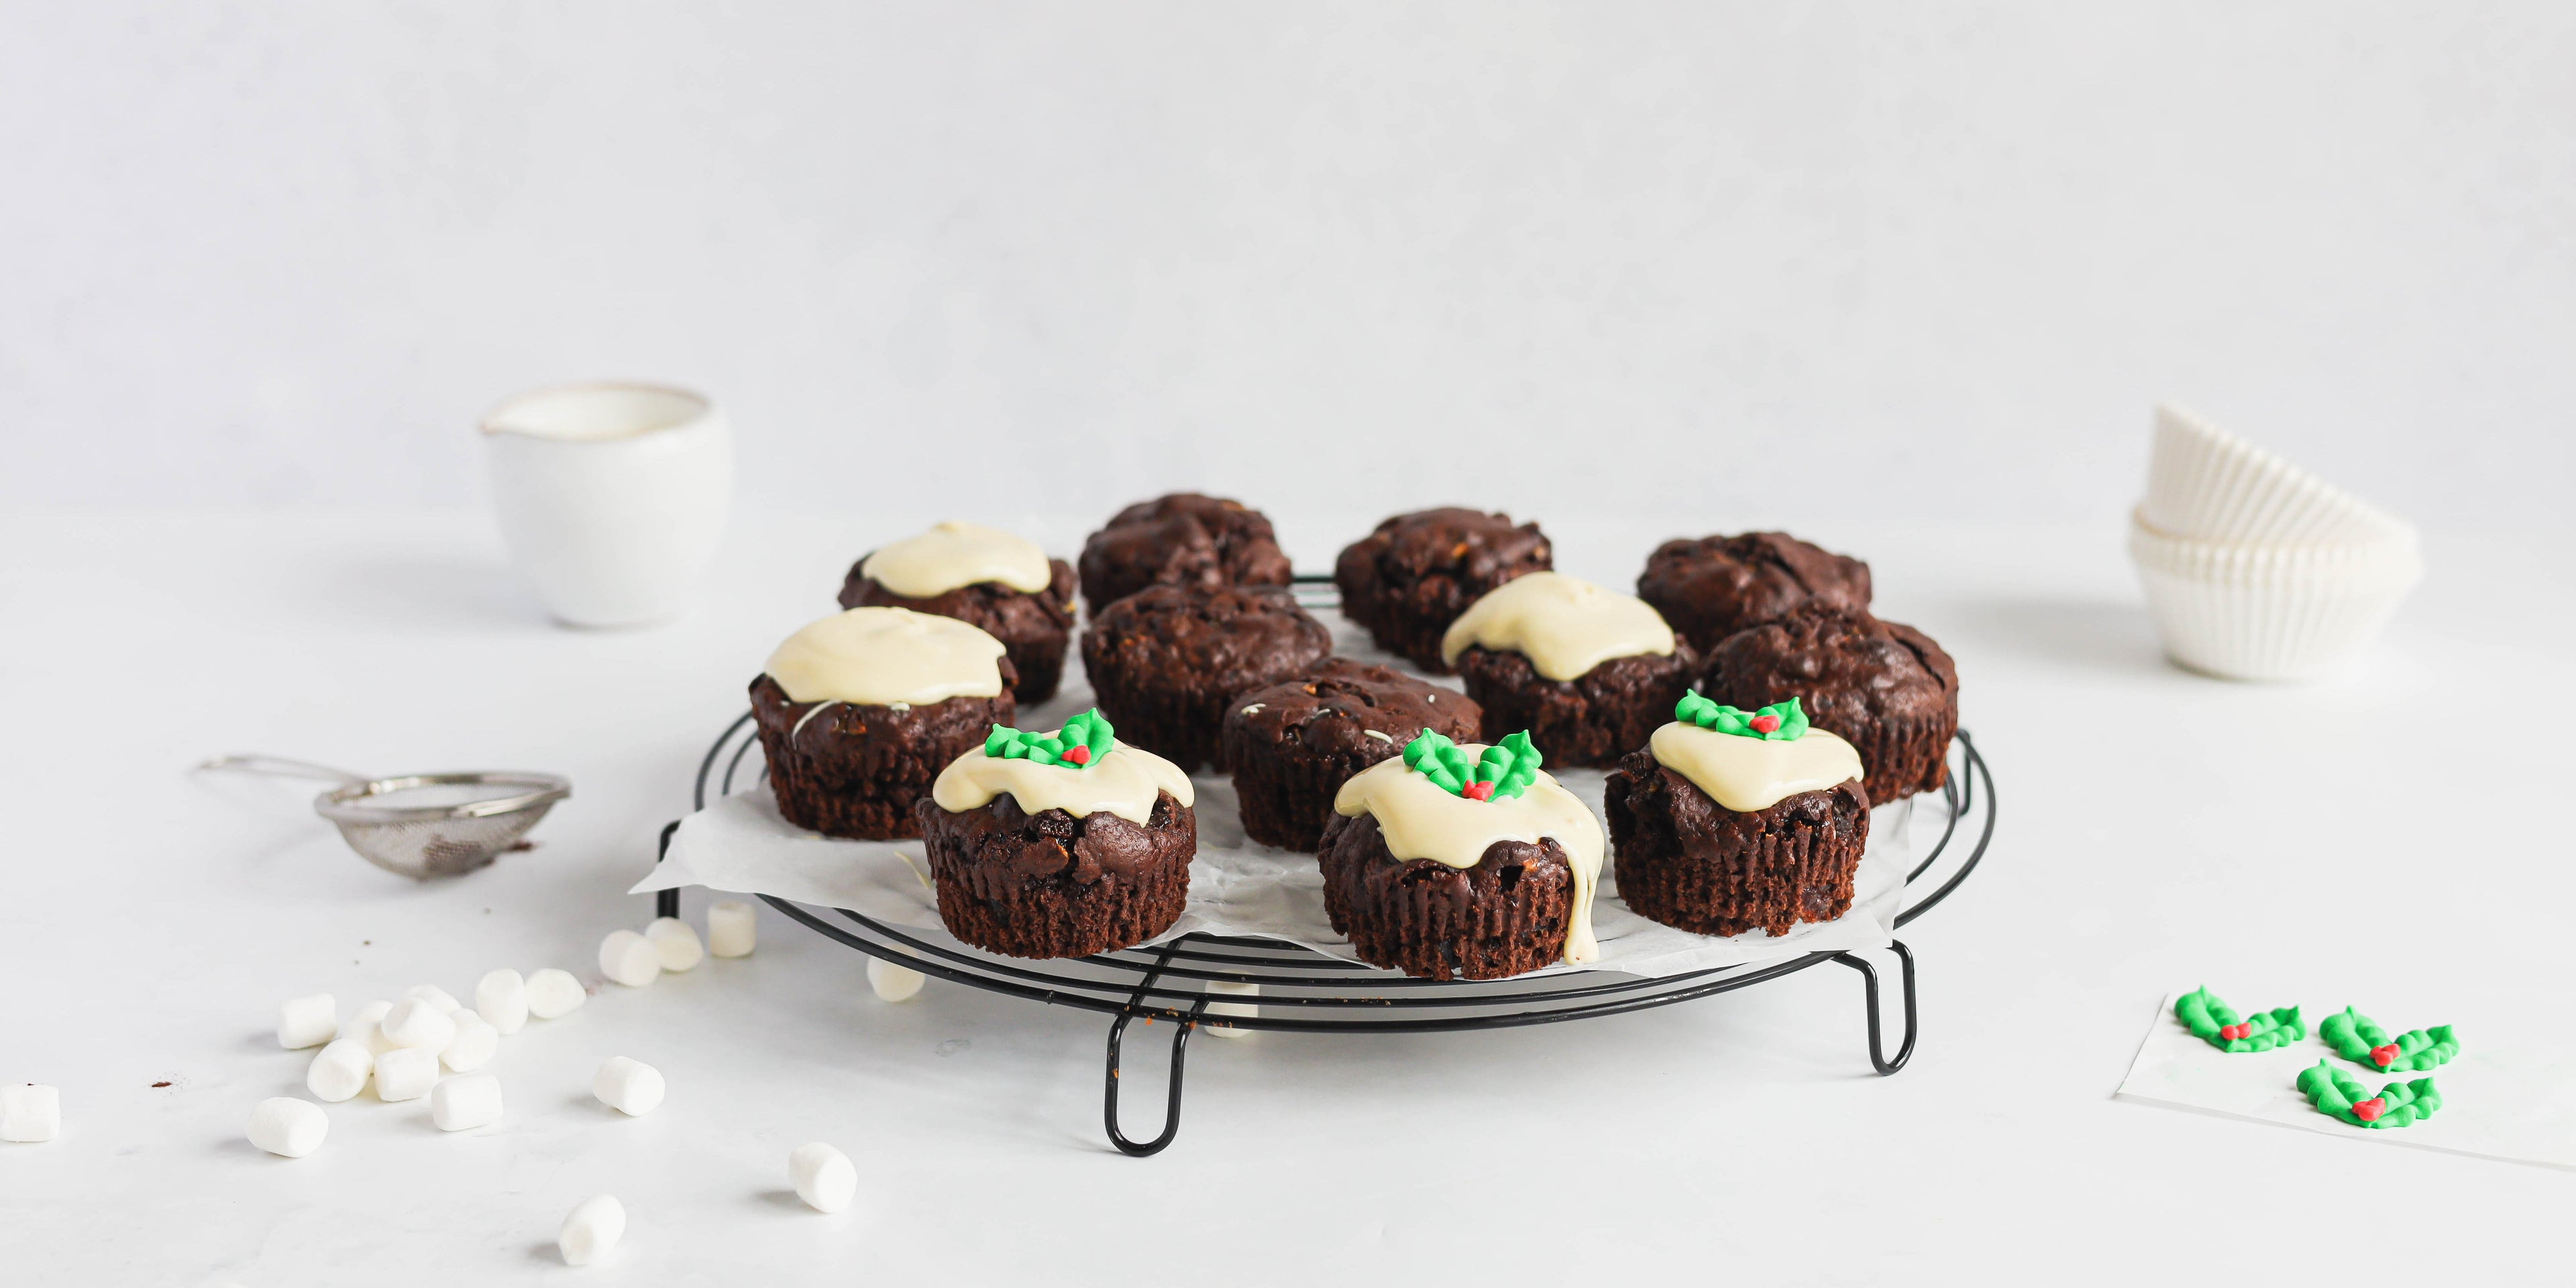 Mini Rocky Road Christmas Pudding Muffins on a wire rack, being decorated with white chocolate and holly.